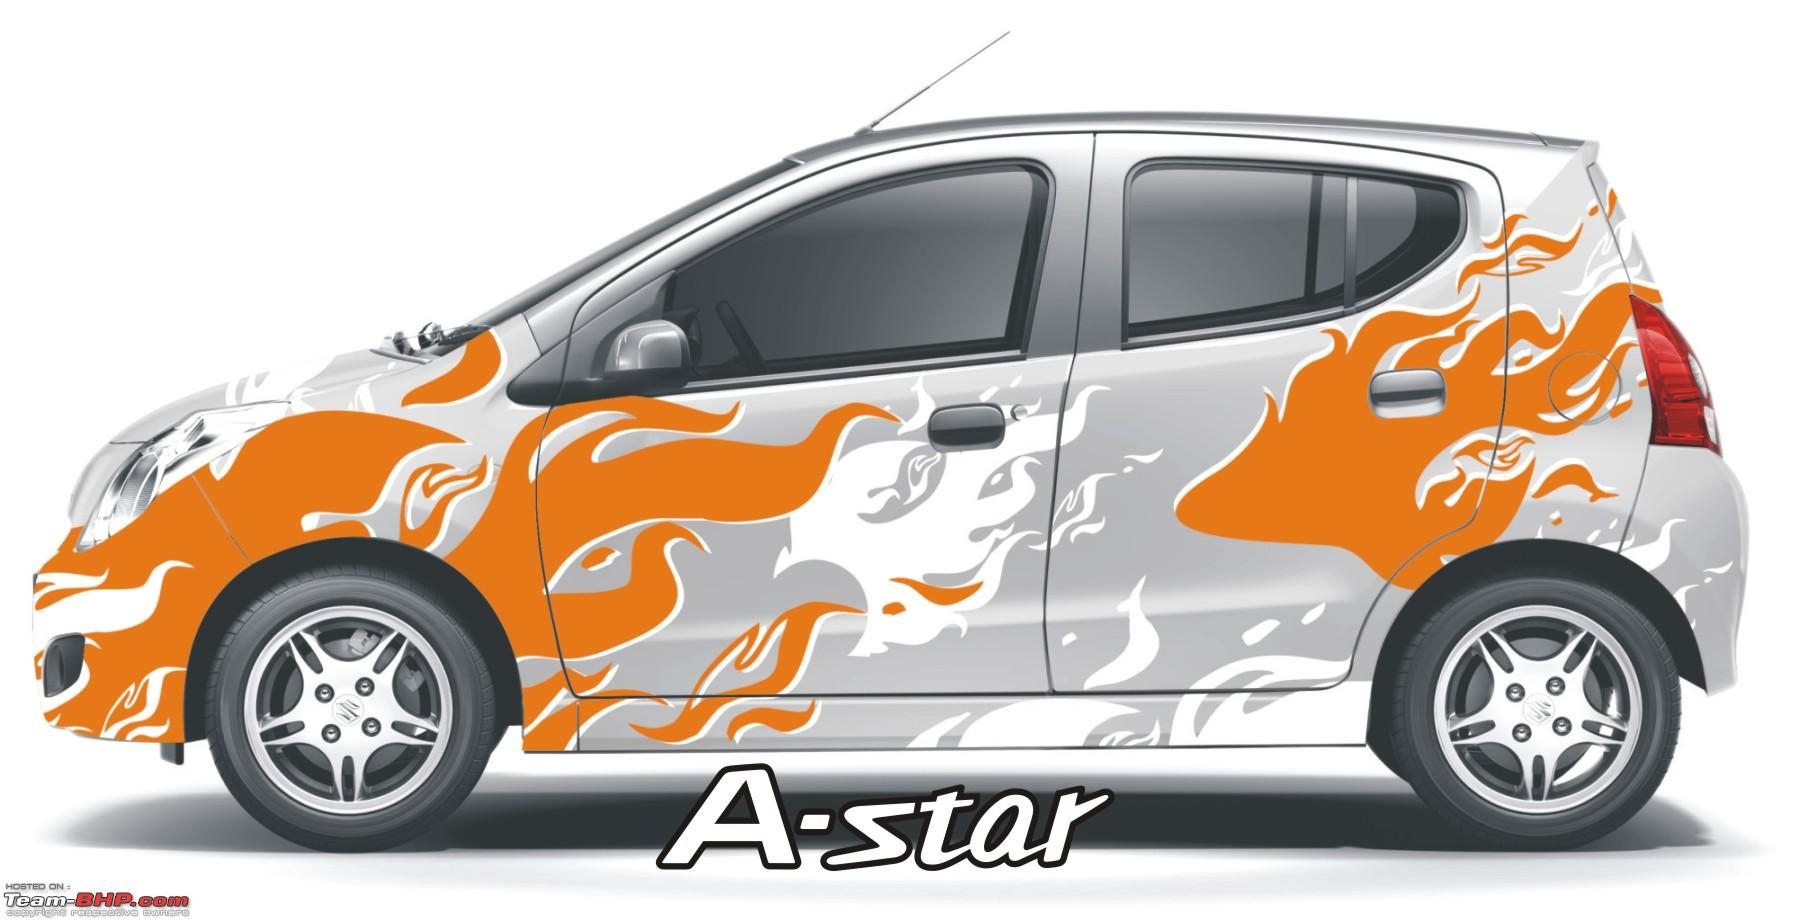 Car sticker design in bangalore - Maruti A Star Now With A Choice Of 16 Body Wrap Stickers